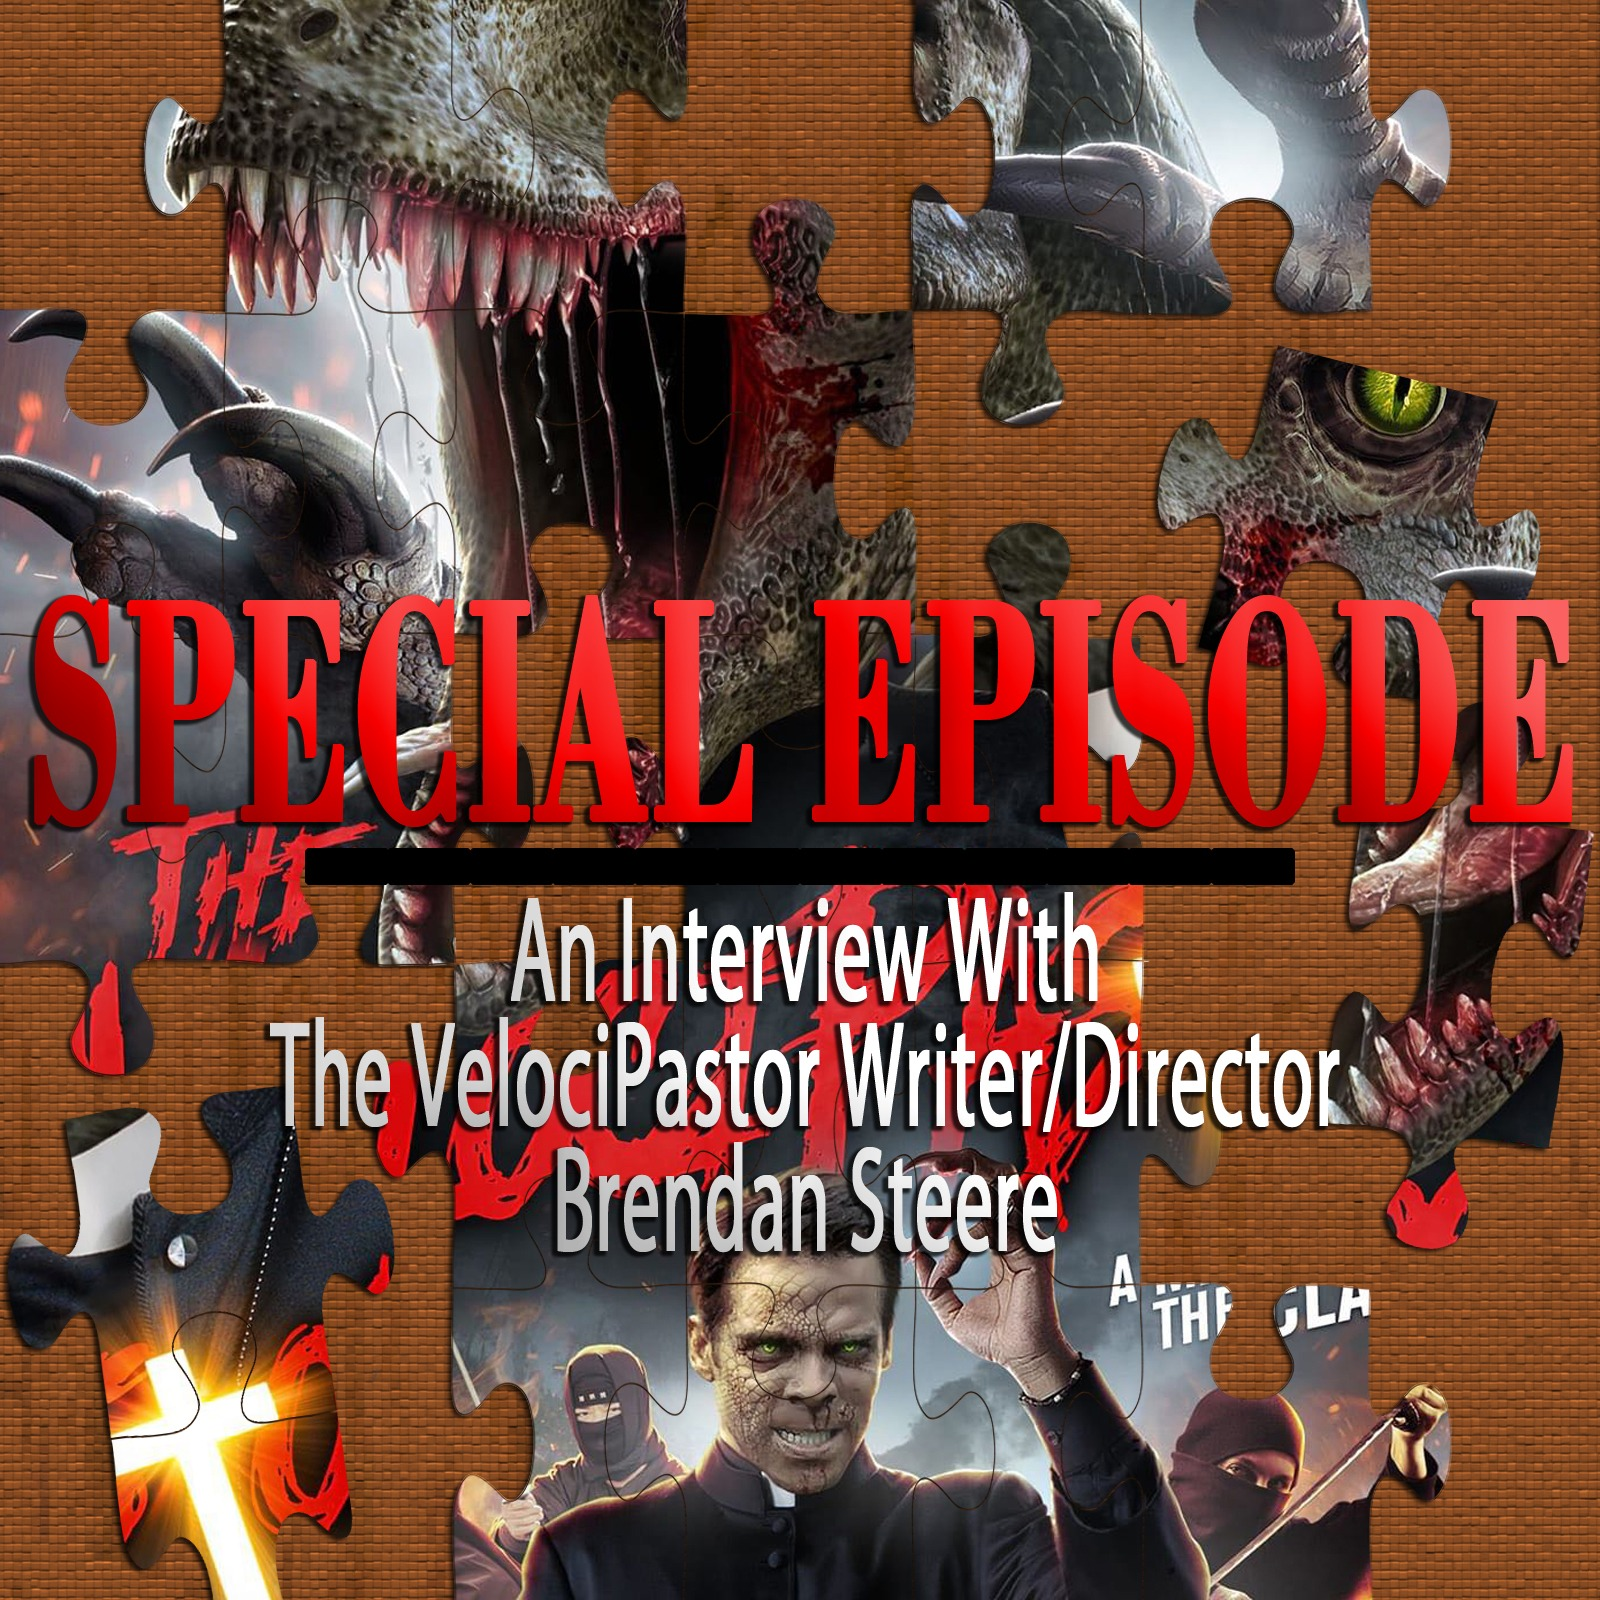 The VelociPastor – Brendan Steere Interview (Special Episode)